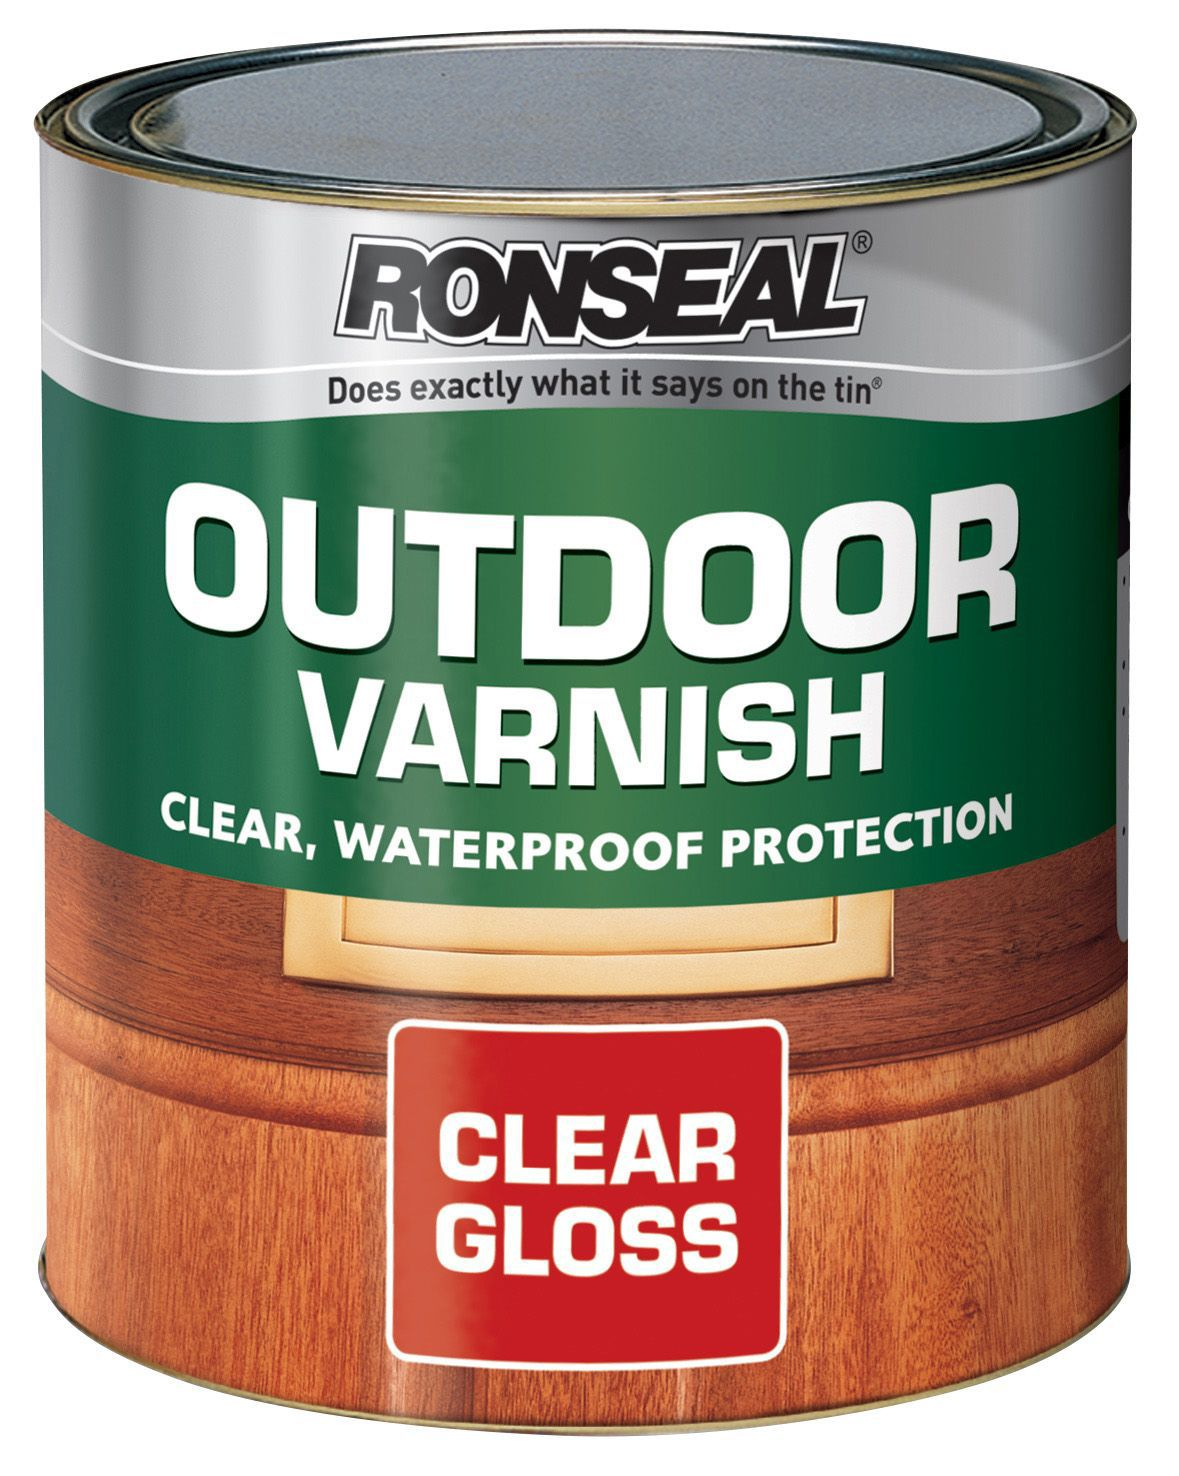 Ronseal Gloss Outdoor Varnish 2500ml Departments Diy At B Q